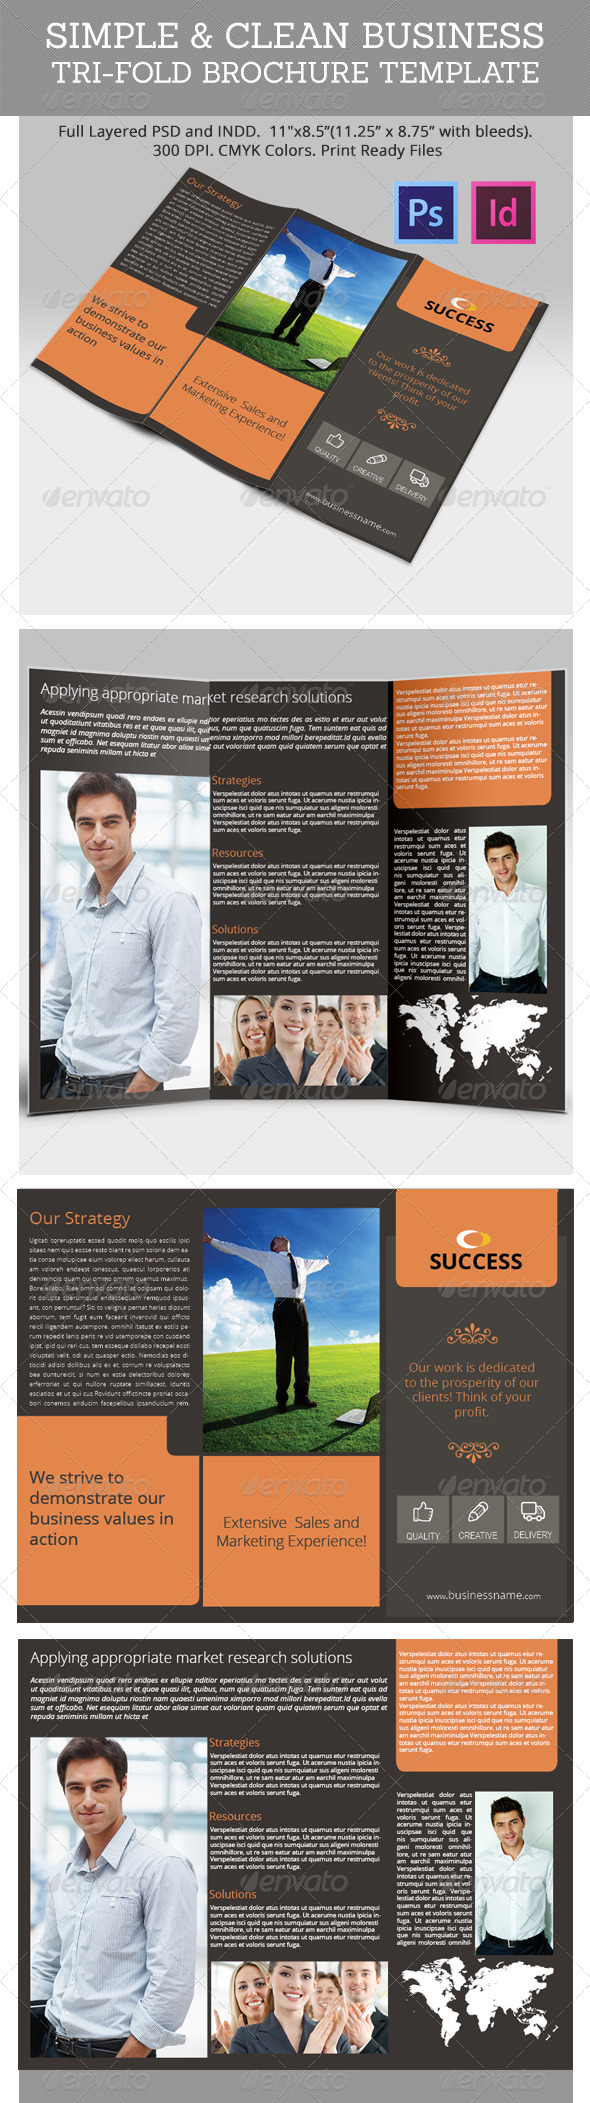 GraphicRiver Simple & Clean Business Tri-Fold Brochure Template 6827333